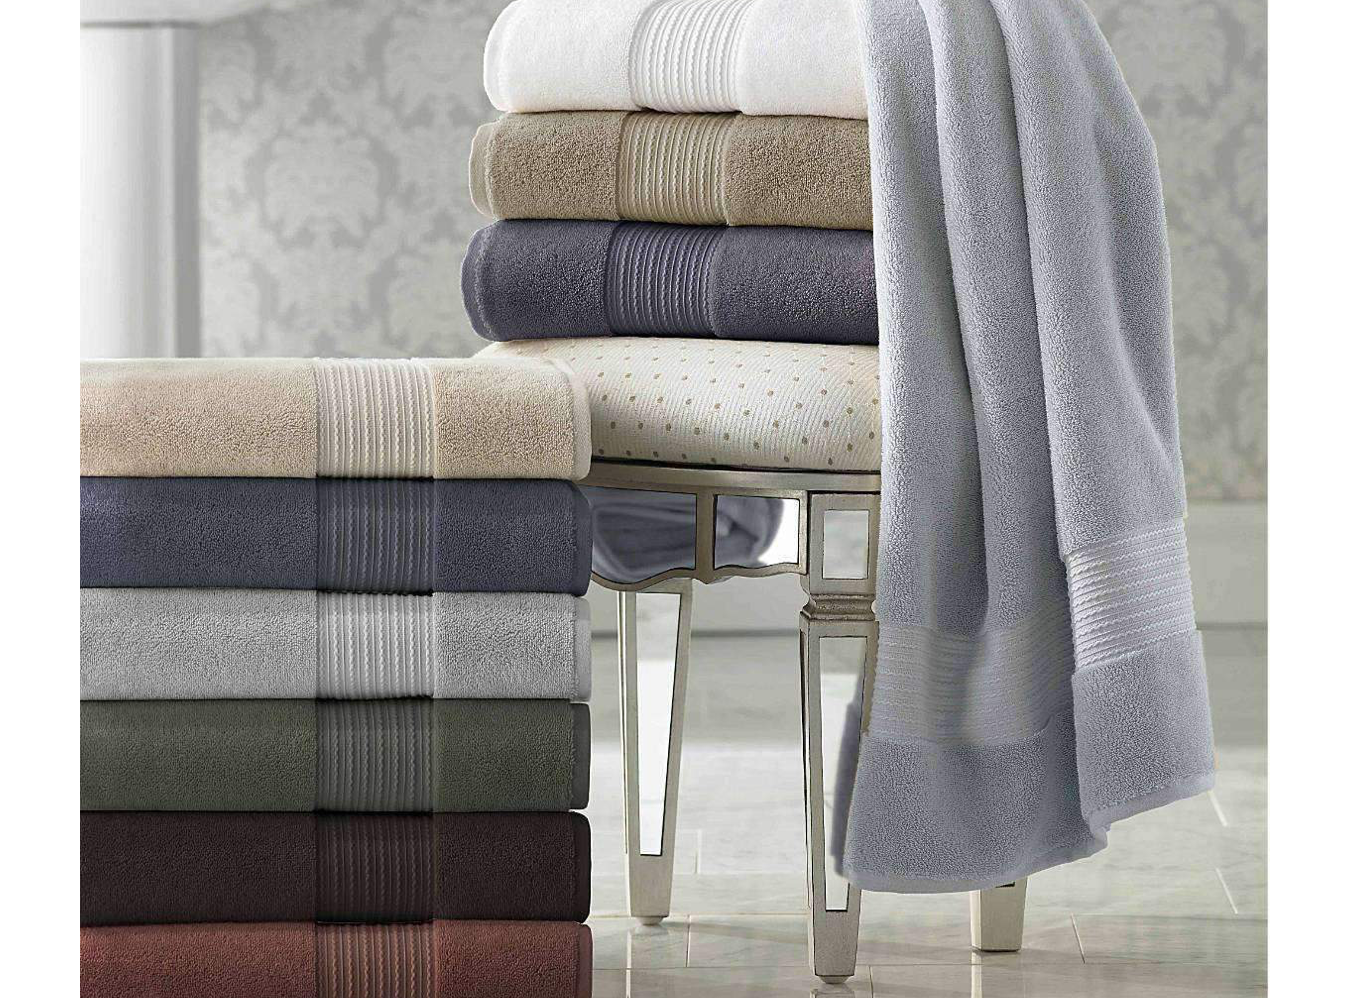 St. Tropez 100% Supima Cotton Spa Towels - Luxor Linens - We just got our very first monogrammed set in since being engaged! Luxor Linens has an awesome line of luxury spa cotton towels, that come in 11 different colors. And you can have them all monogramed as well! Perfect gift for the newlyweds. These towels are super absorbent and dry quick as well. Our favorite part, is these are oversized and nice and fluffy…so very cozy after a nice shower. There's not much worse than hopping out of the shower and having to dry off with a thin small towel. Now we get the luxury of the spa, with our very own towels. (Seriously, she'll thank you!) They're also made super durable, so they'll last you a long time. Plus, you can personalize them with whatever you want, so they'll make a great gift for anyone on your list! Be sure to check out their full line of towels, robes and linens on their site. There's sure to be something you'll love!